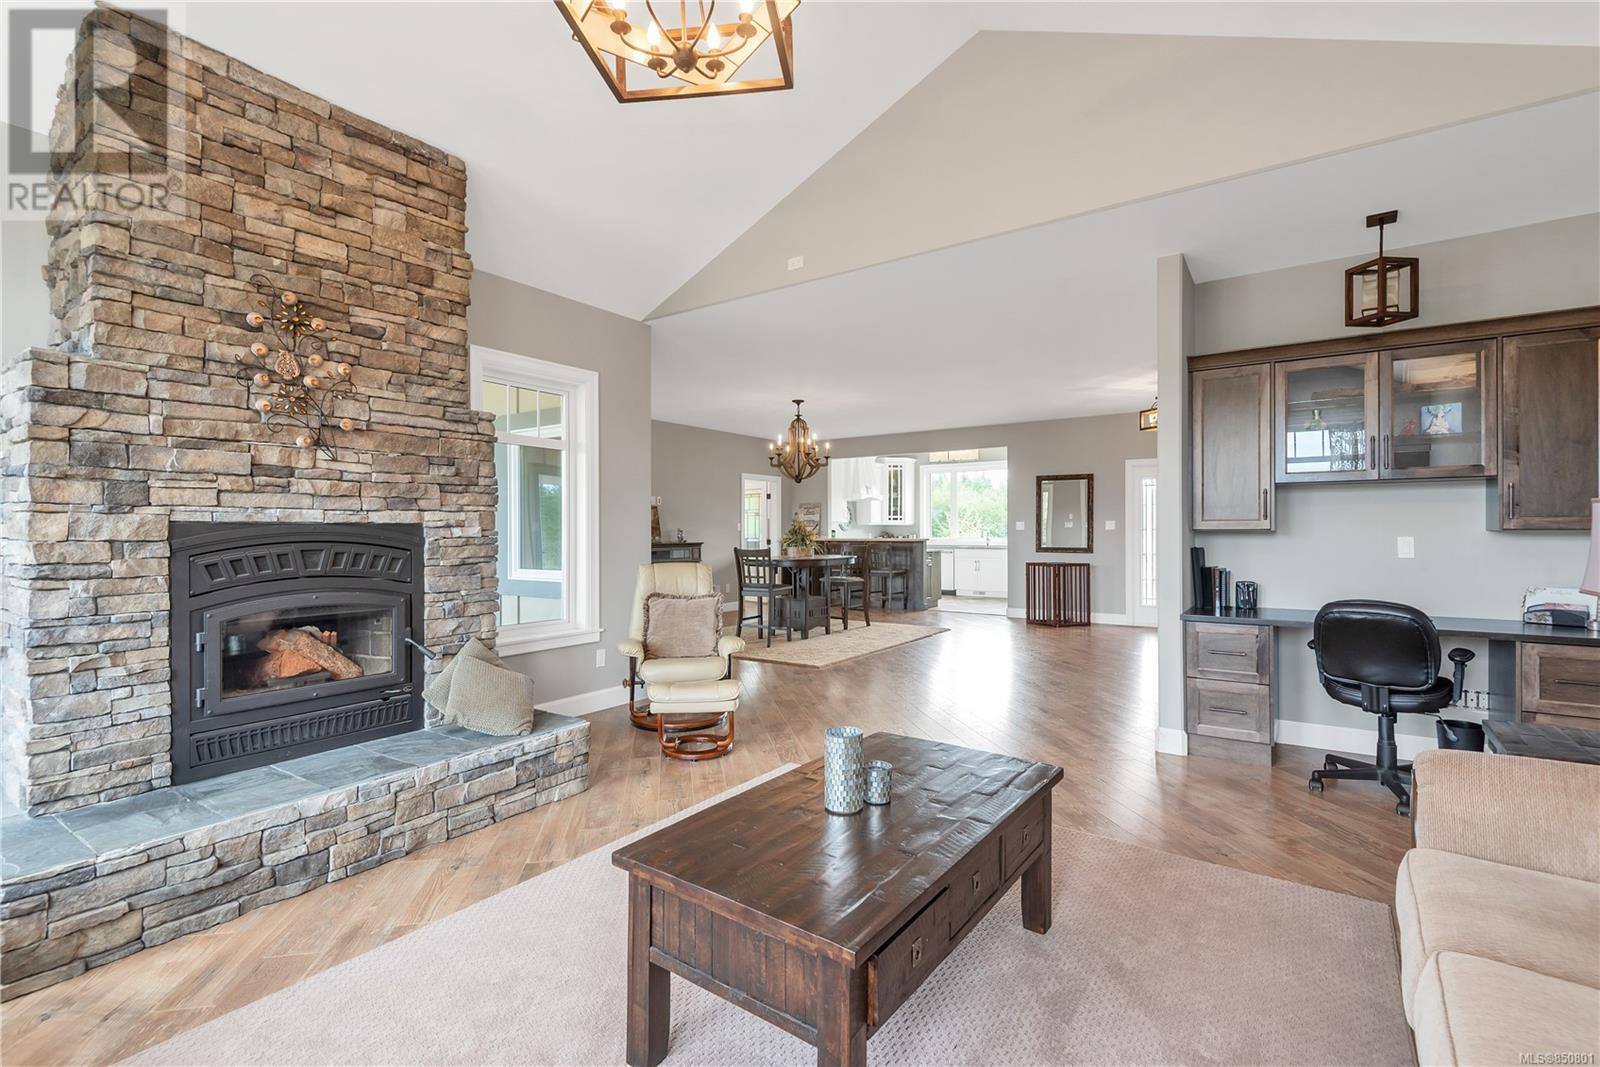 MLS® #850801 - Campbell River House For sale Image #19